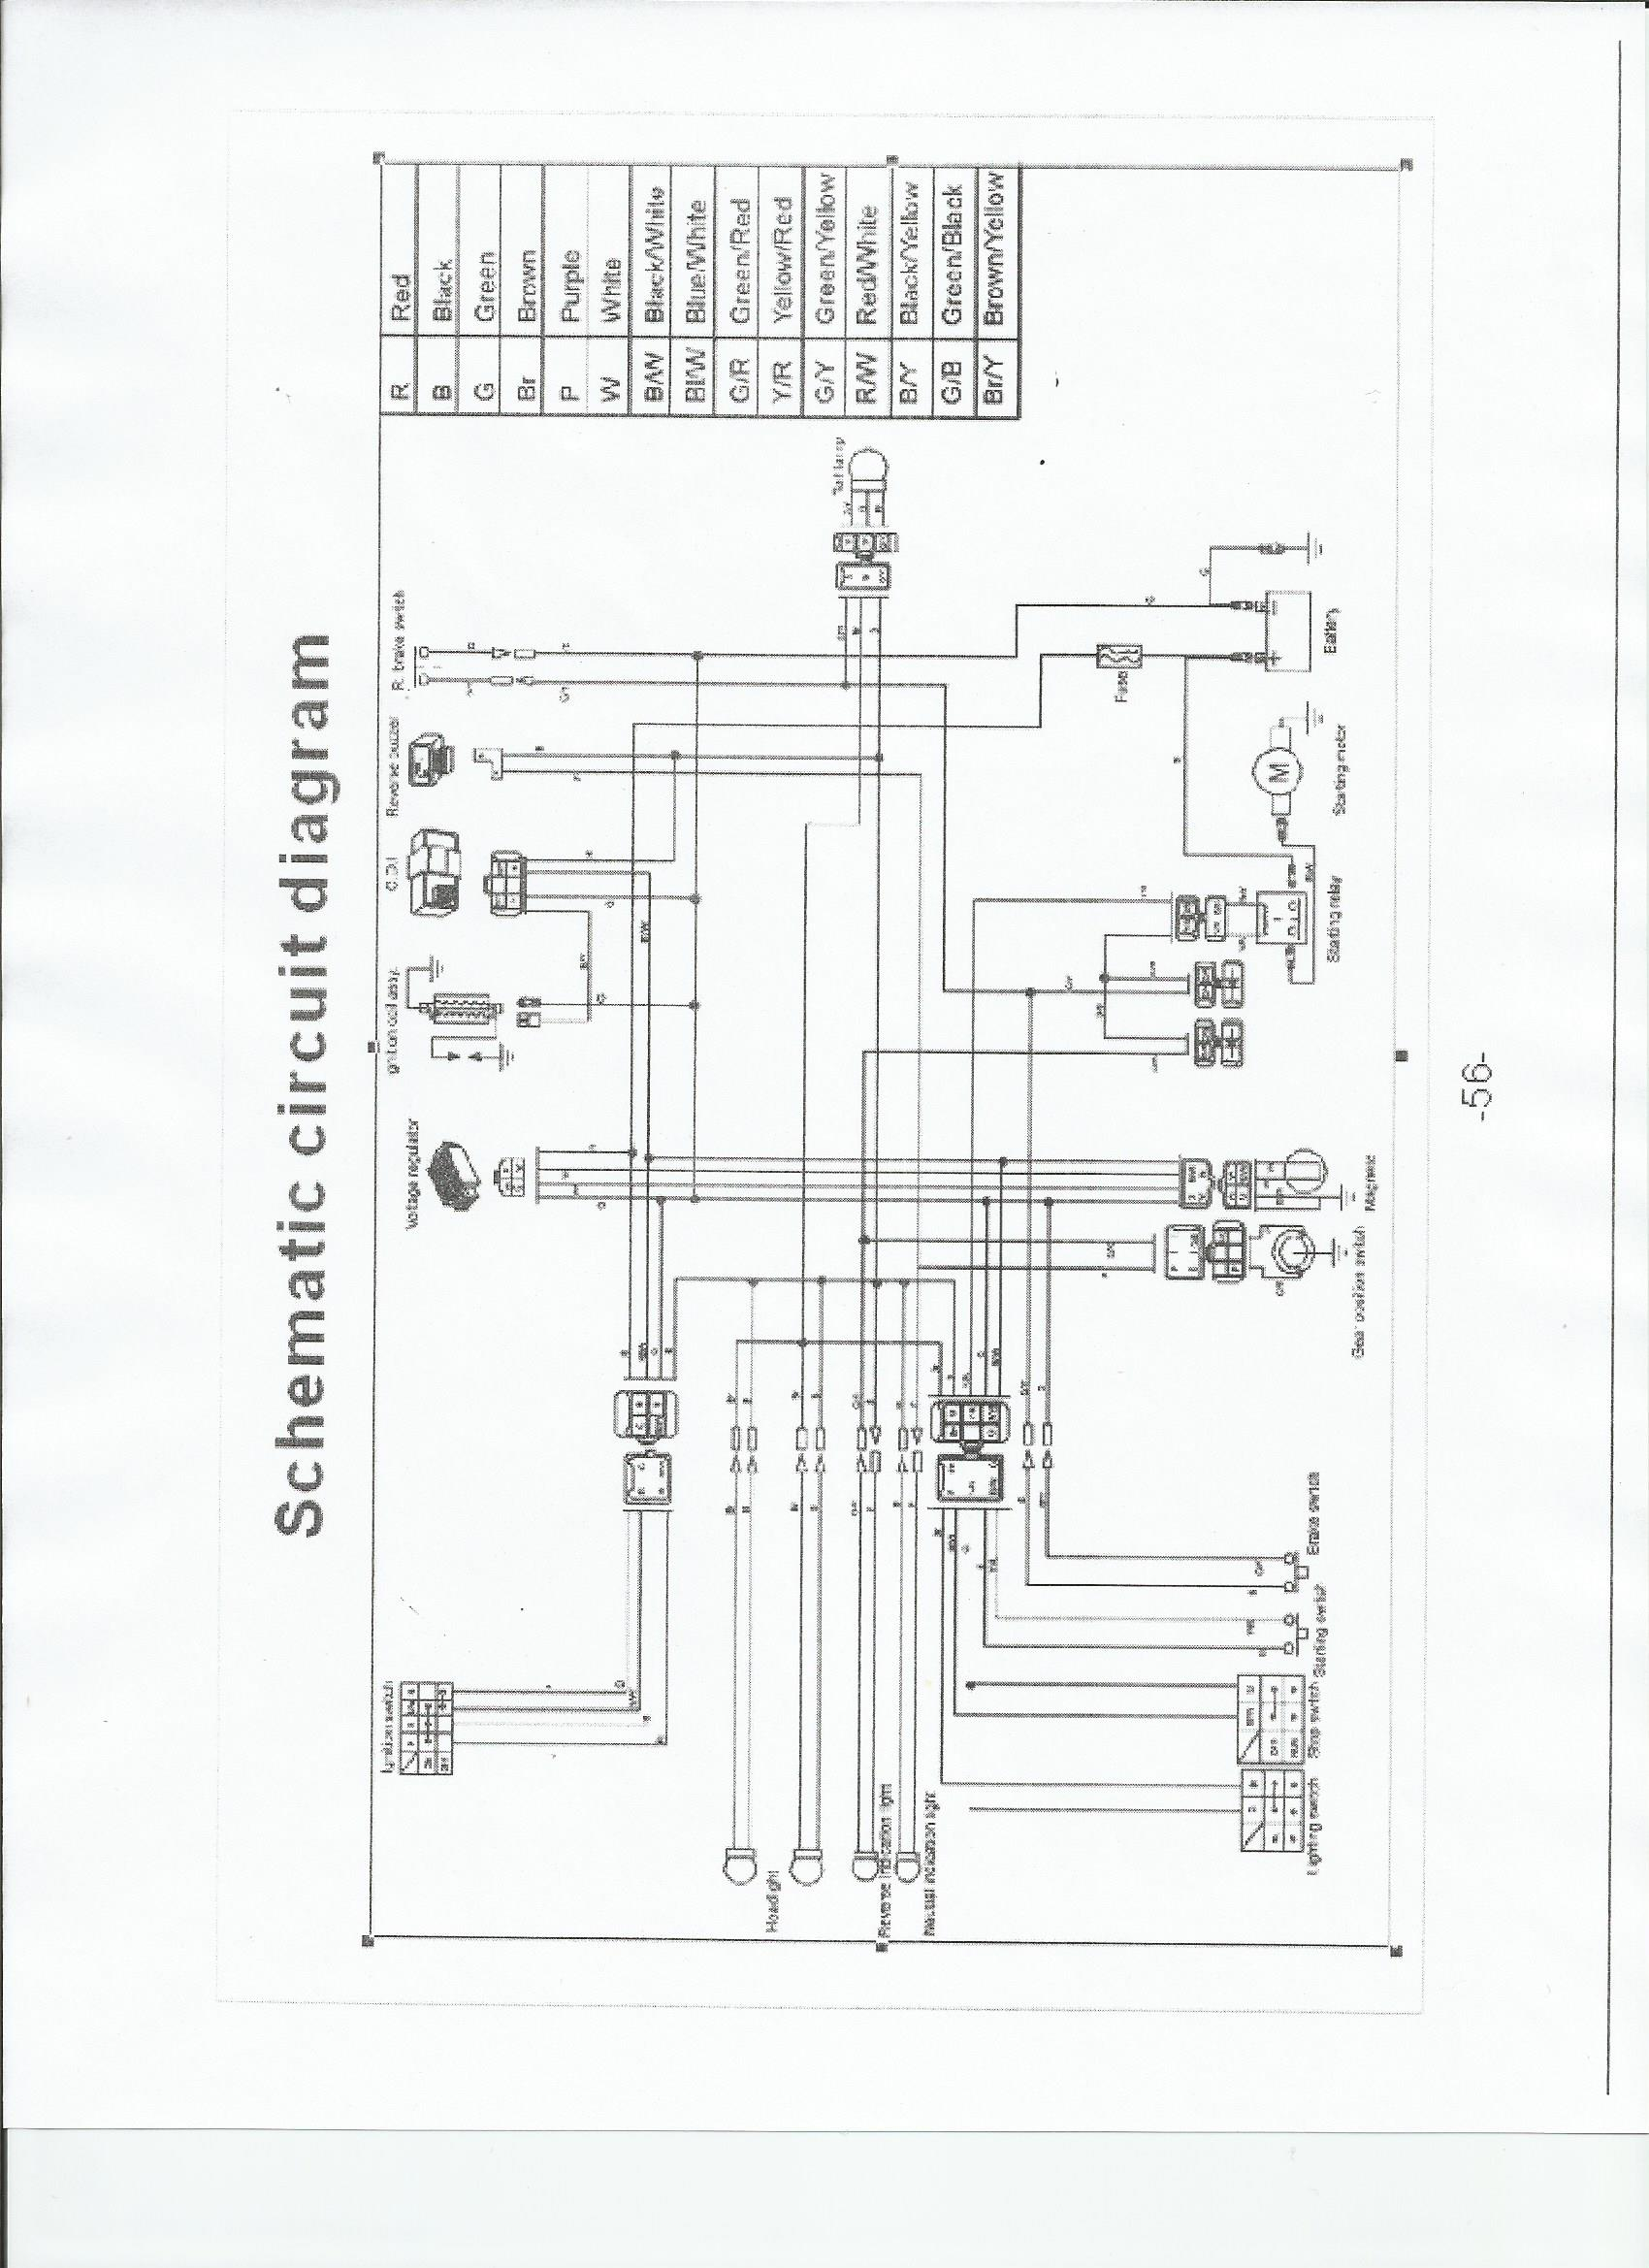 tao tao 125 wiring diagram catalogue of schemas 90cc go kart wiring diagram catalogue